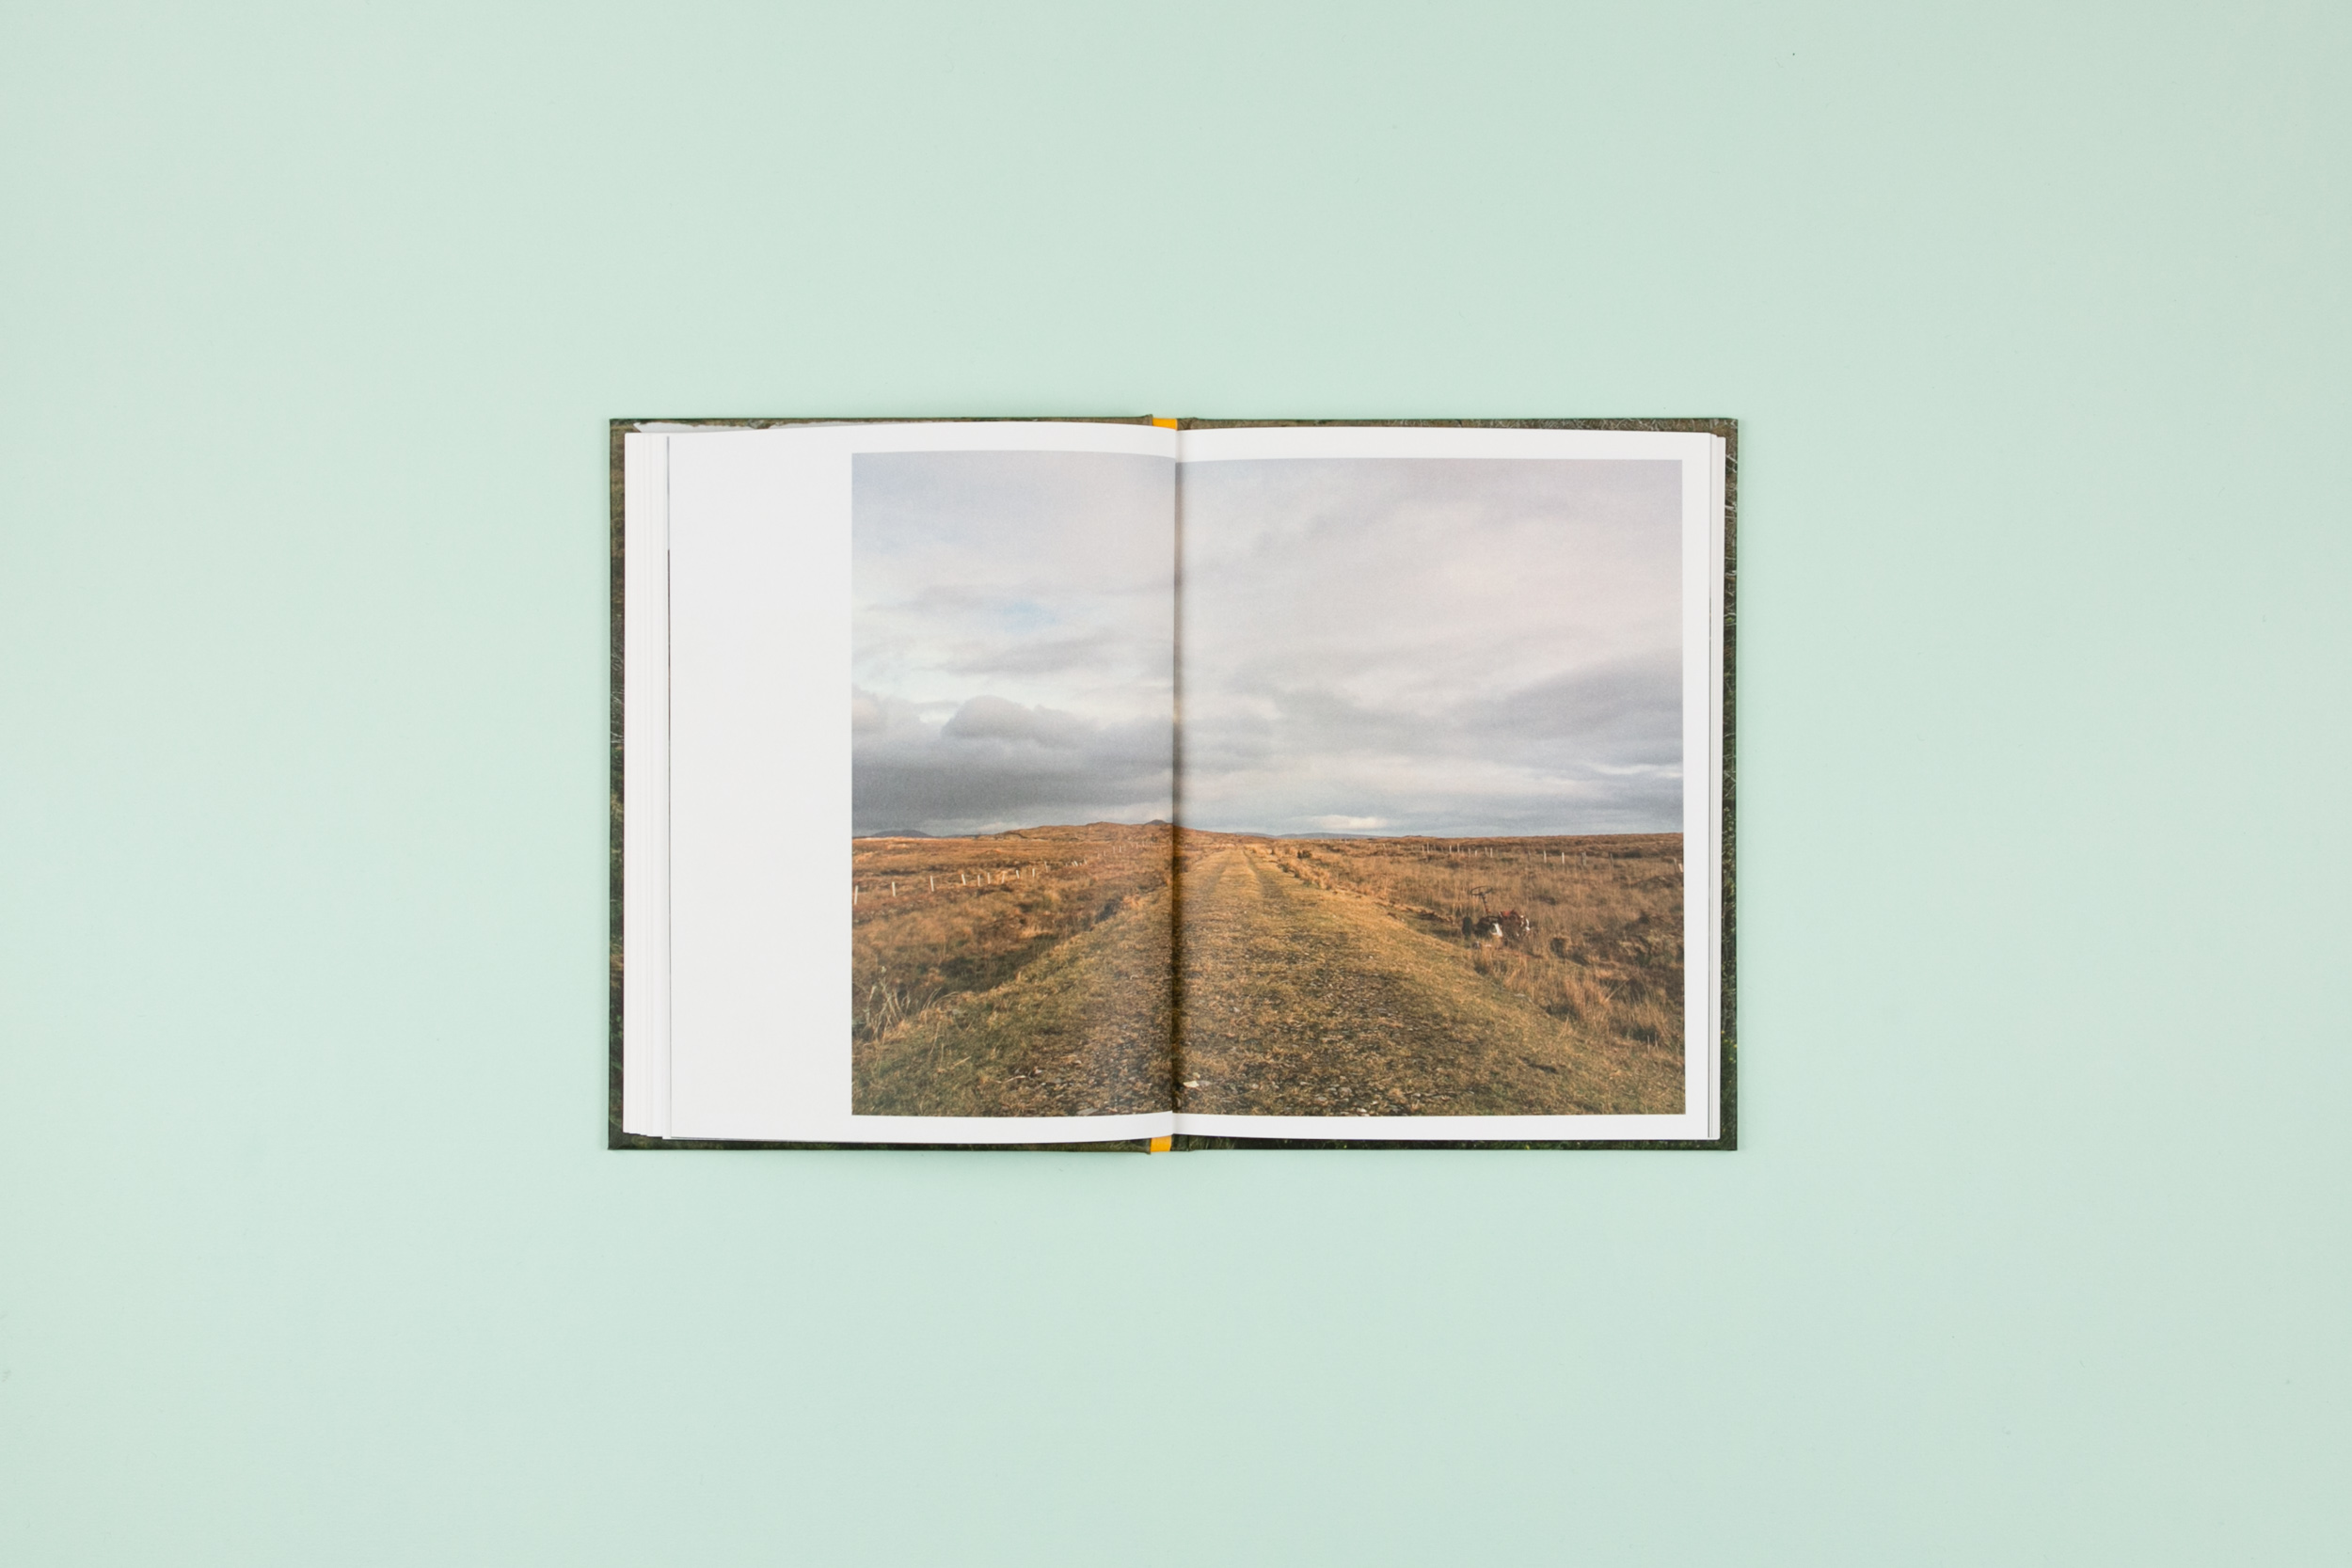 Book spread from 'The Whistle Blowing', a photobook featuring photography by Lorraine Tuck. Self-published and designed in collaboration with Read That Image.